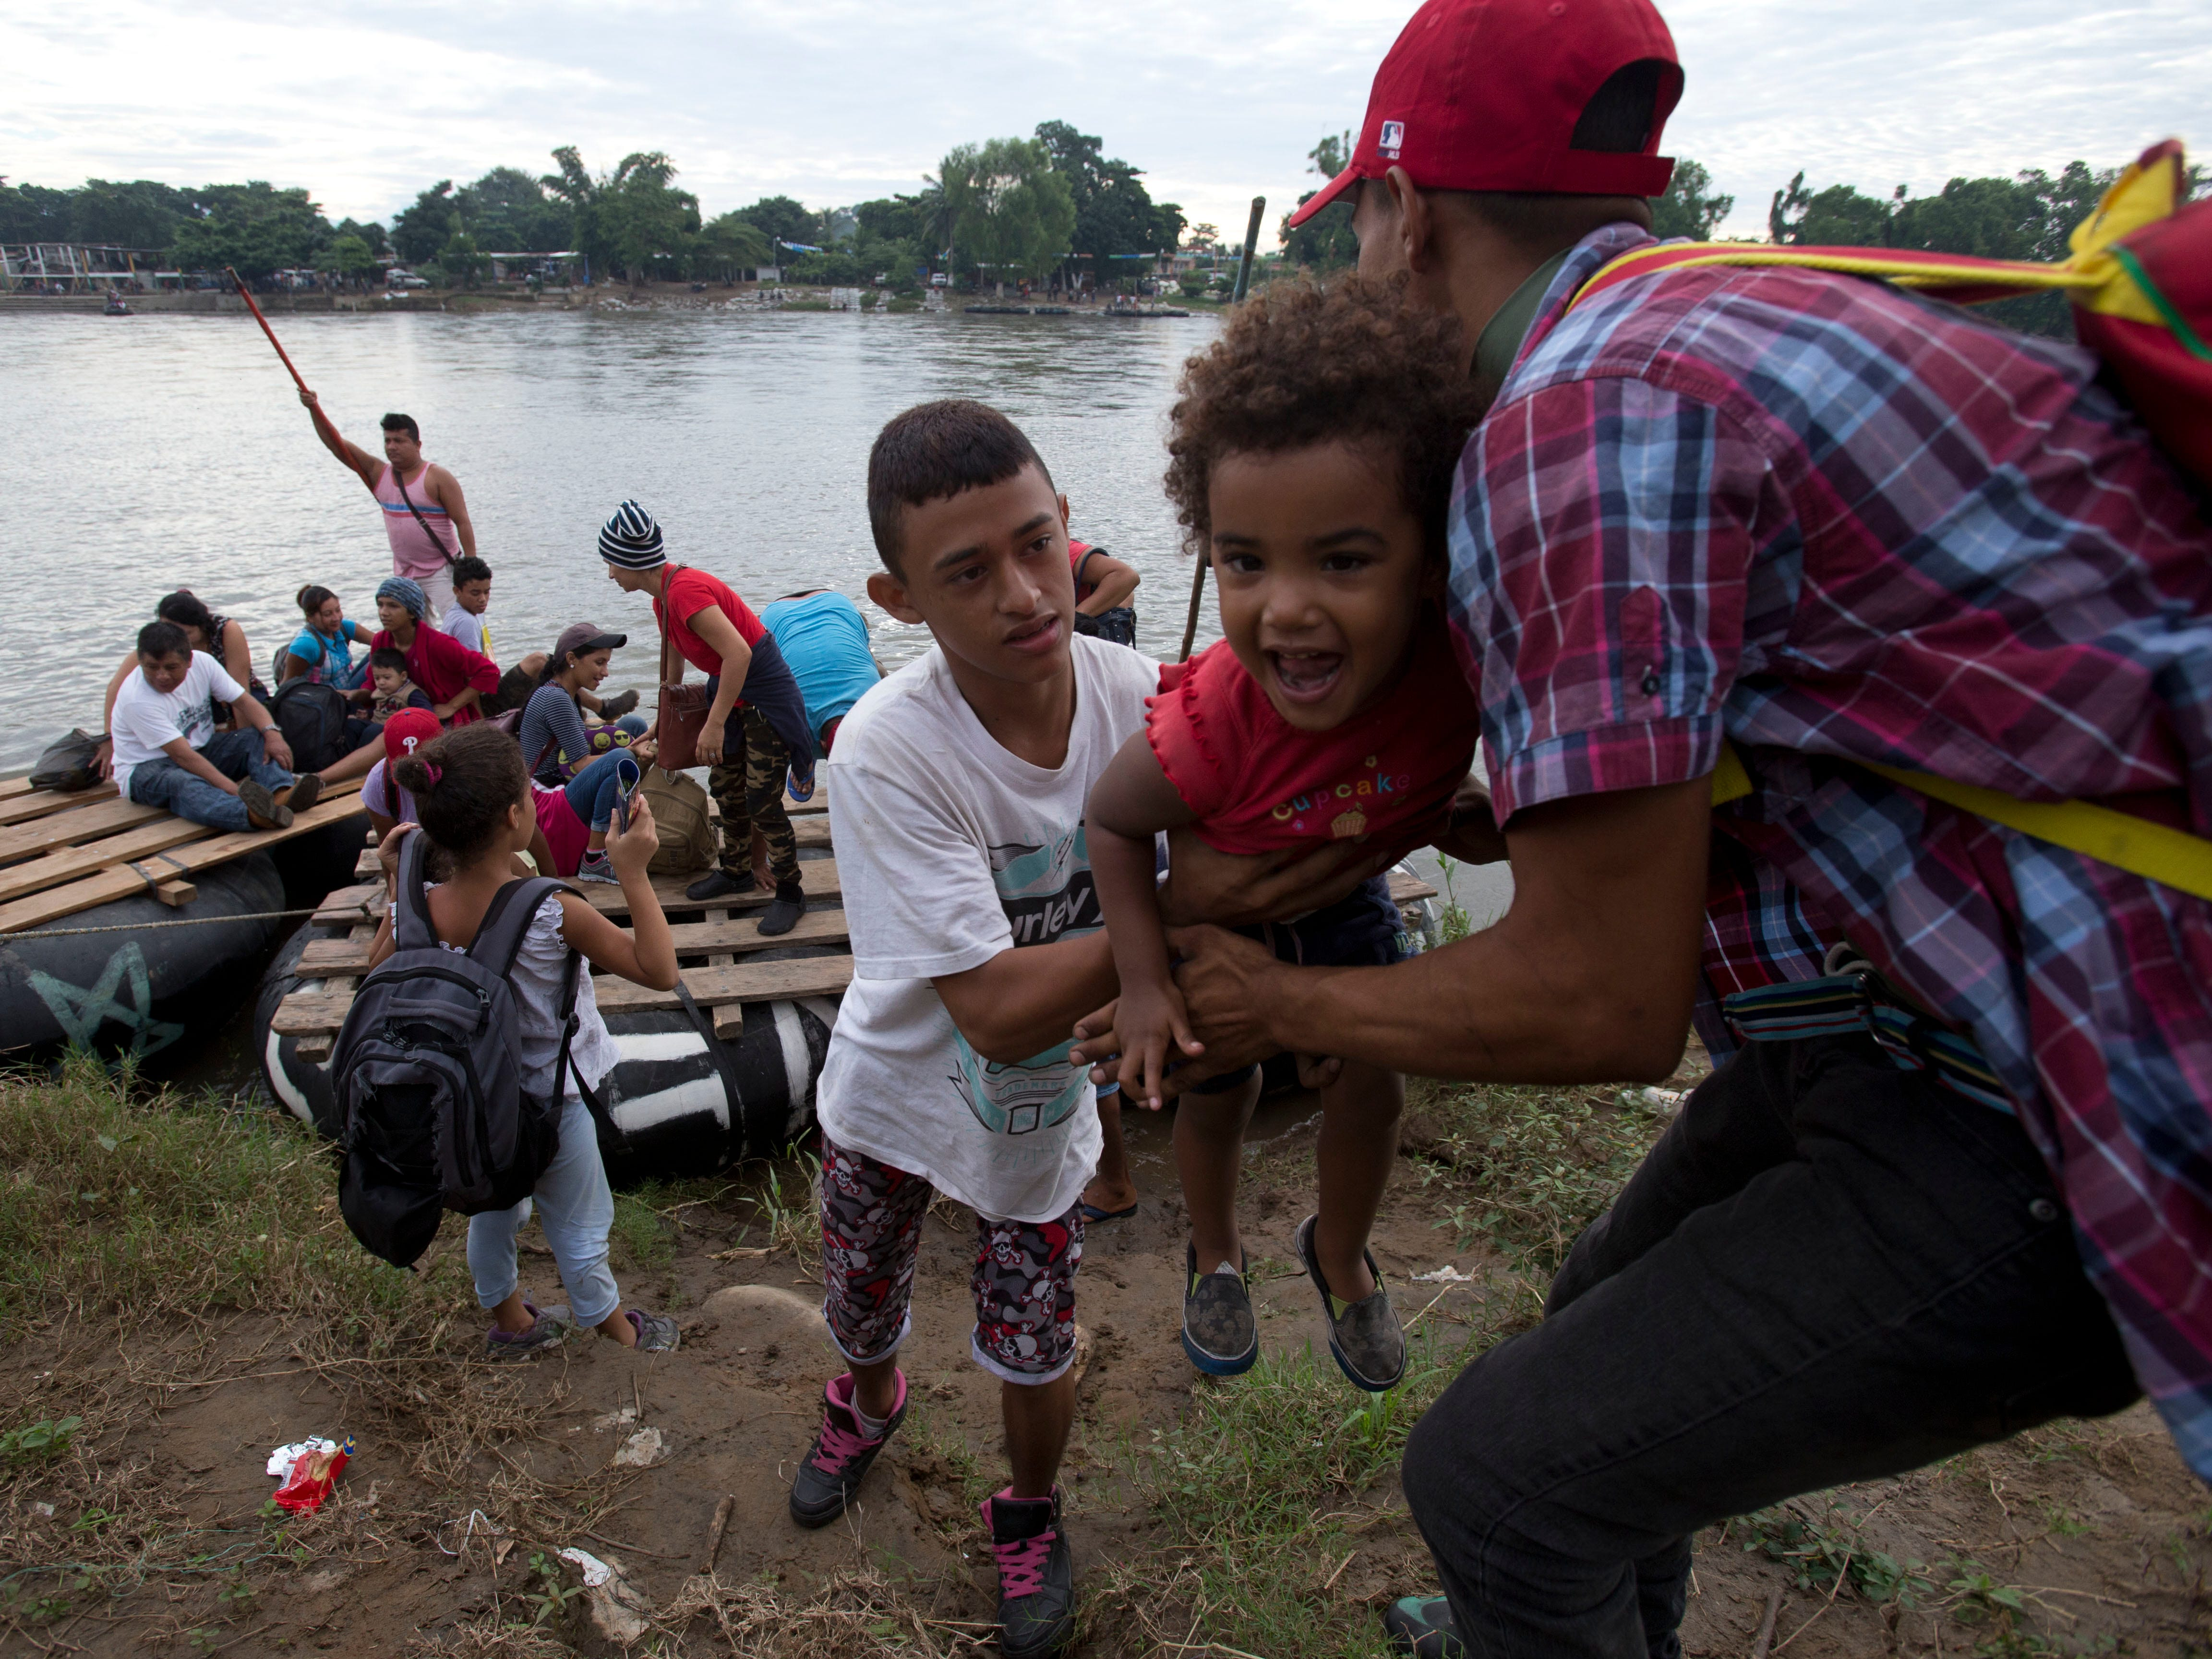 A group of Honduran migrants arrives to the Mexican side of the border after crossing the Suchiate River aboard a raft made out of tractor inner tubes and wooden planks, on the the border with Guatemala, in Ciudad Hidalgo, Mexico, Saturday, Oct. 20, 2018. The entry into Mexico via the bridge that connects the two countries has been closed. The main group of migrants have moved about 30 feet back from the gate that separates them from Mexican police to establish a buffer zone. About 1,000 migrants now remain on the bridge between Guatemala and Mexico.